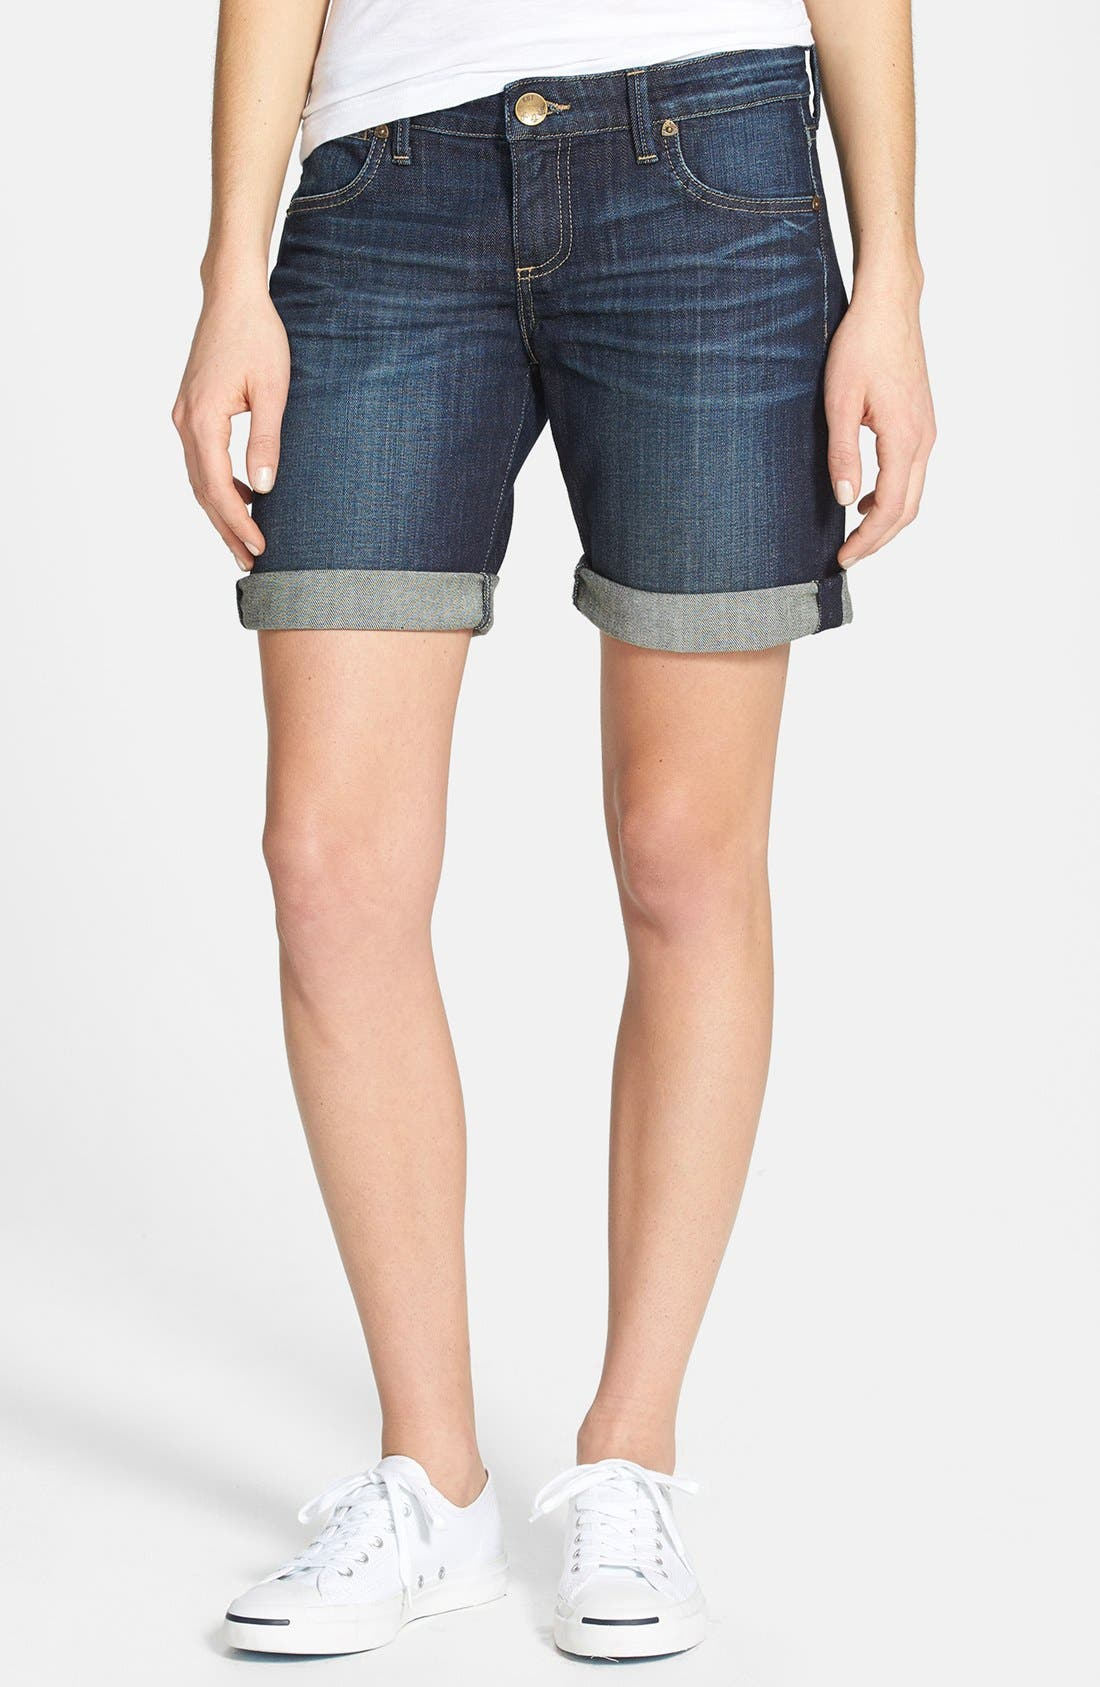 Alternate Image 1 Selected - KUT from the Kloth 'Catherine' Boyfriend Shorts